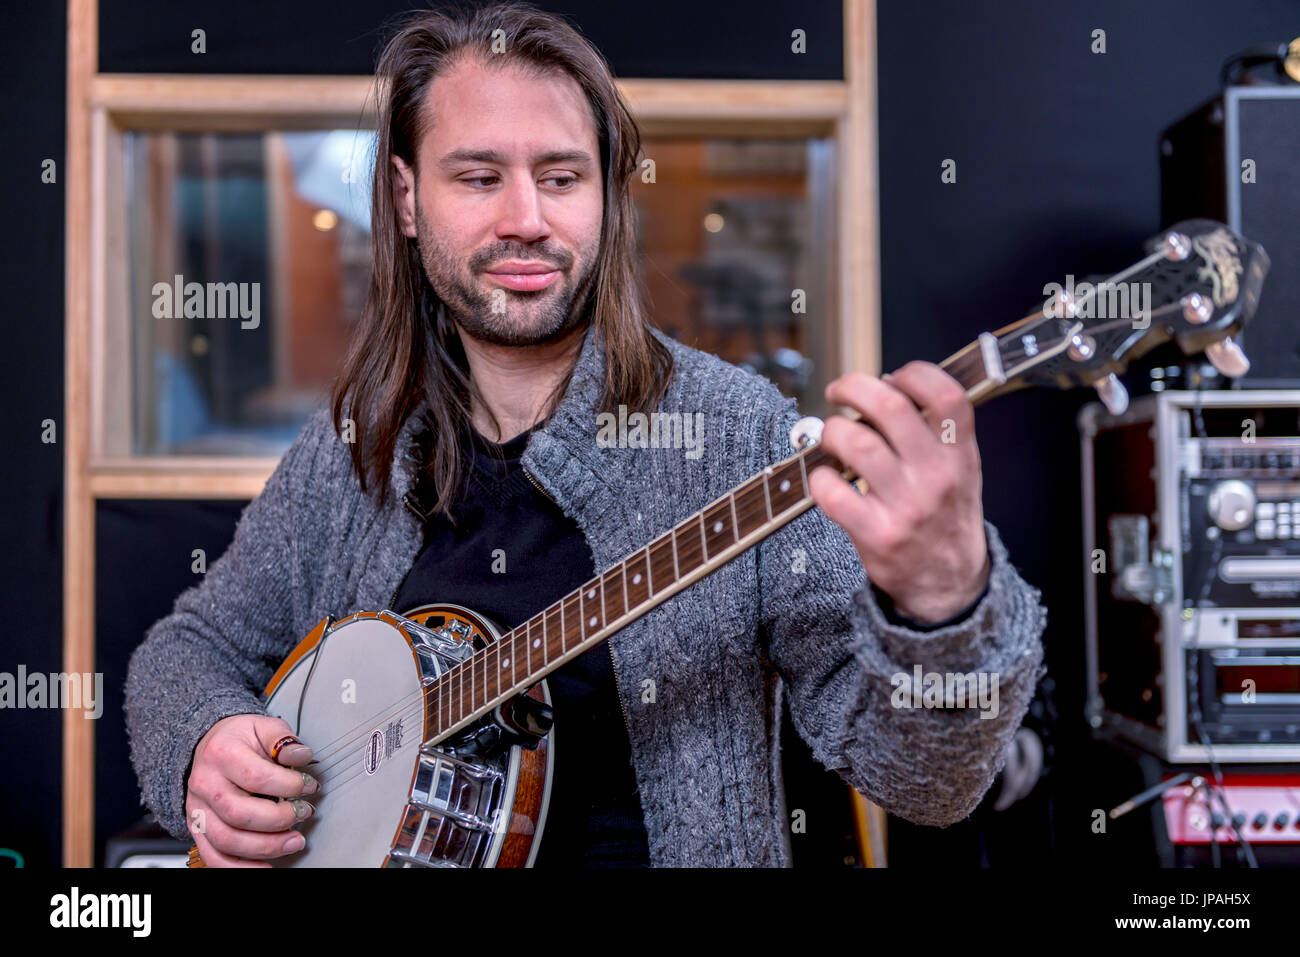 Musicians in the sound studio playing the banjo - Stock Image